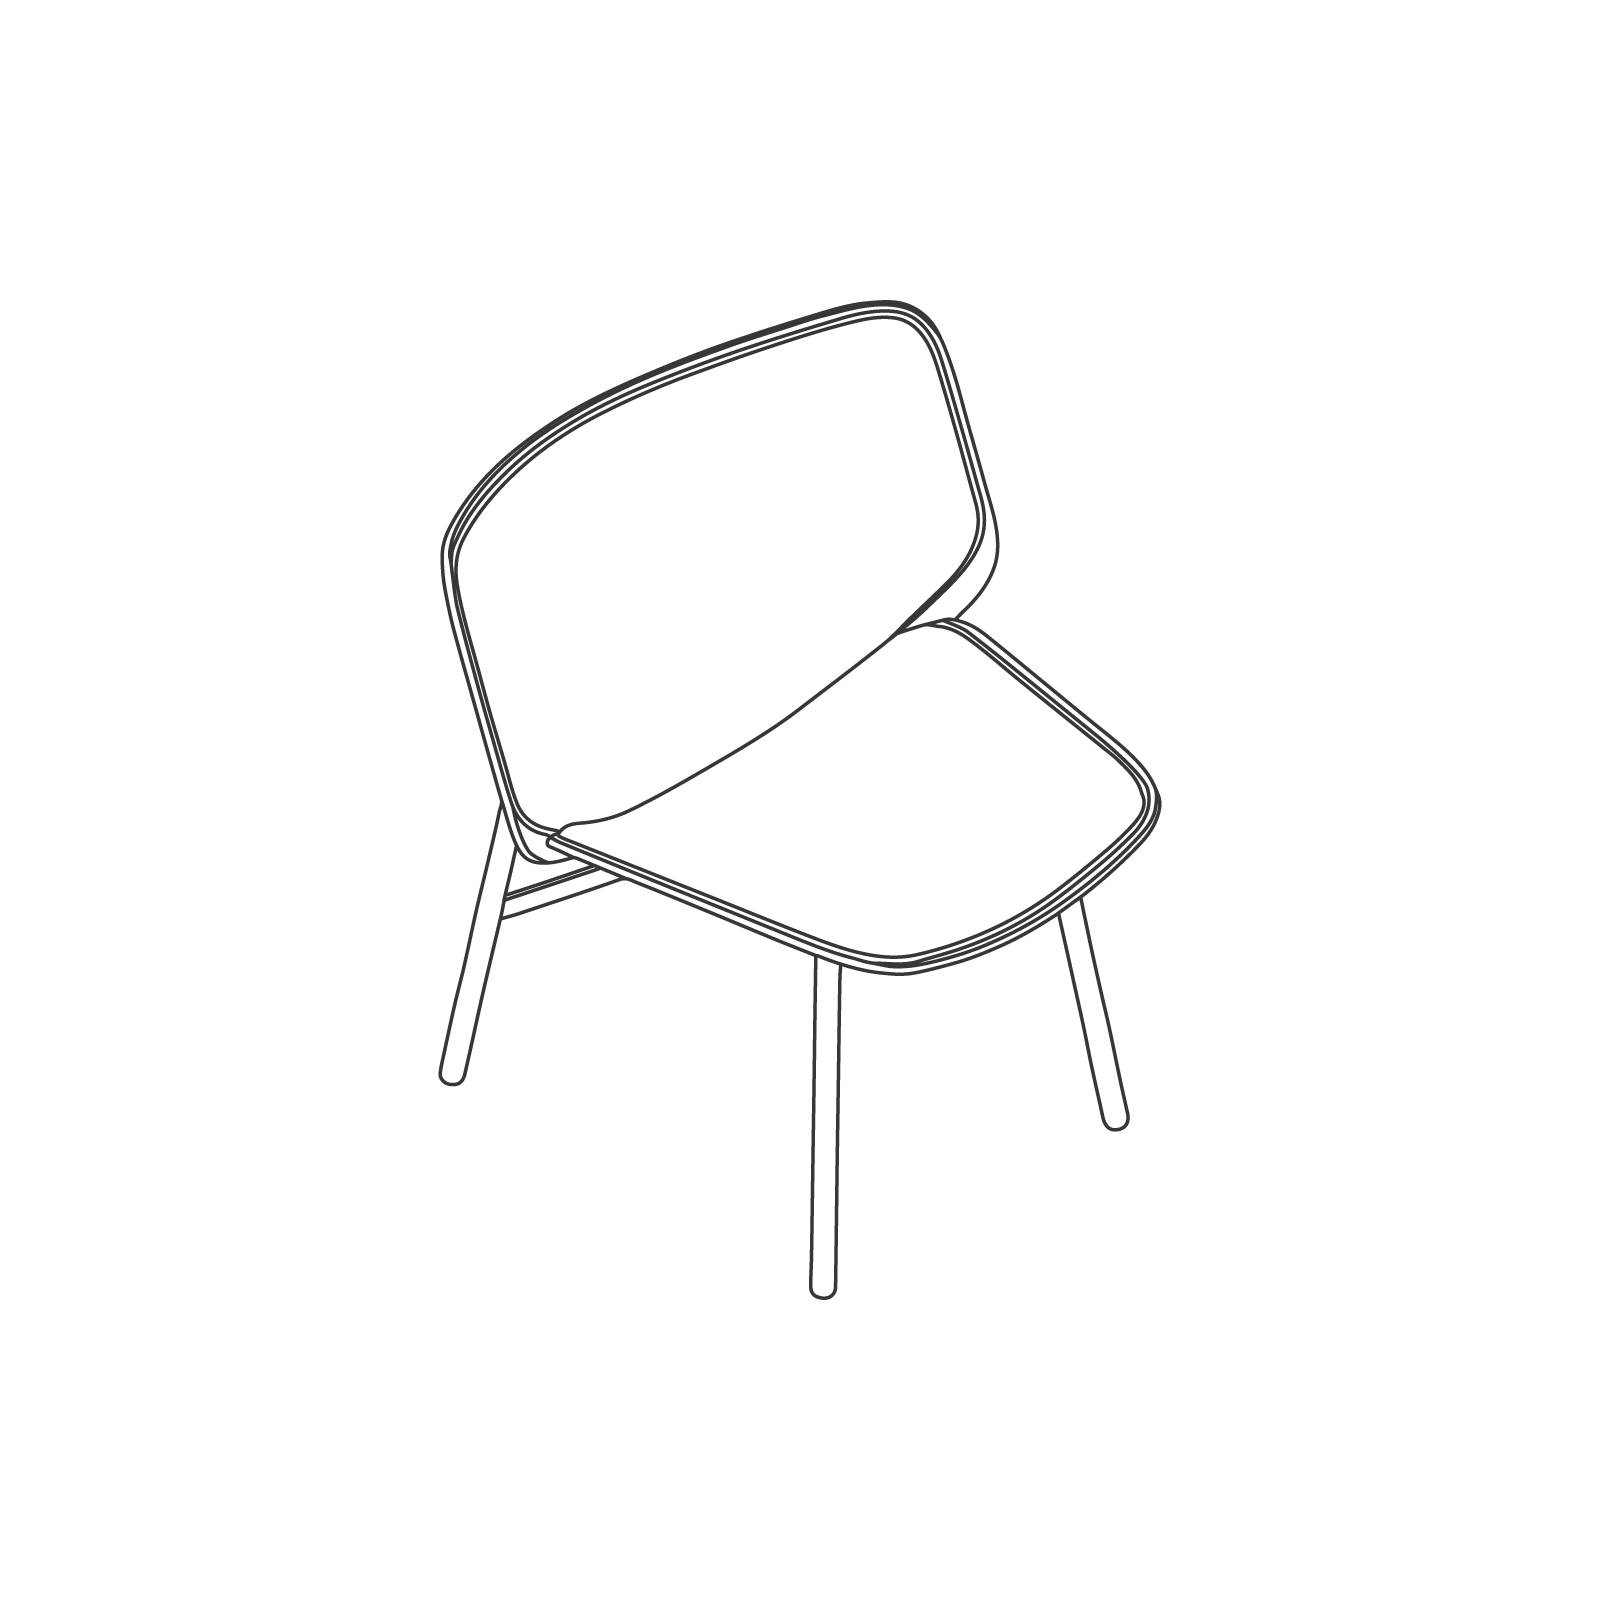 A line drawing - Dapper Lounge Chair.